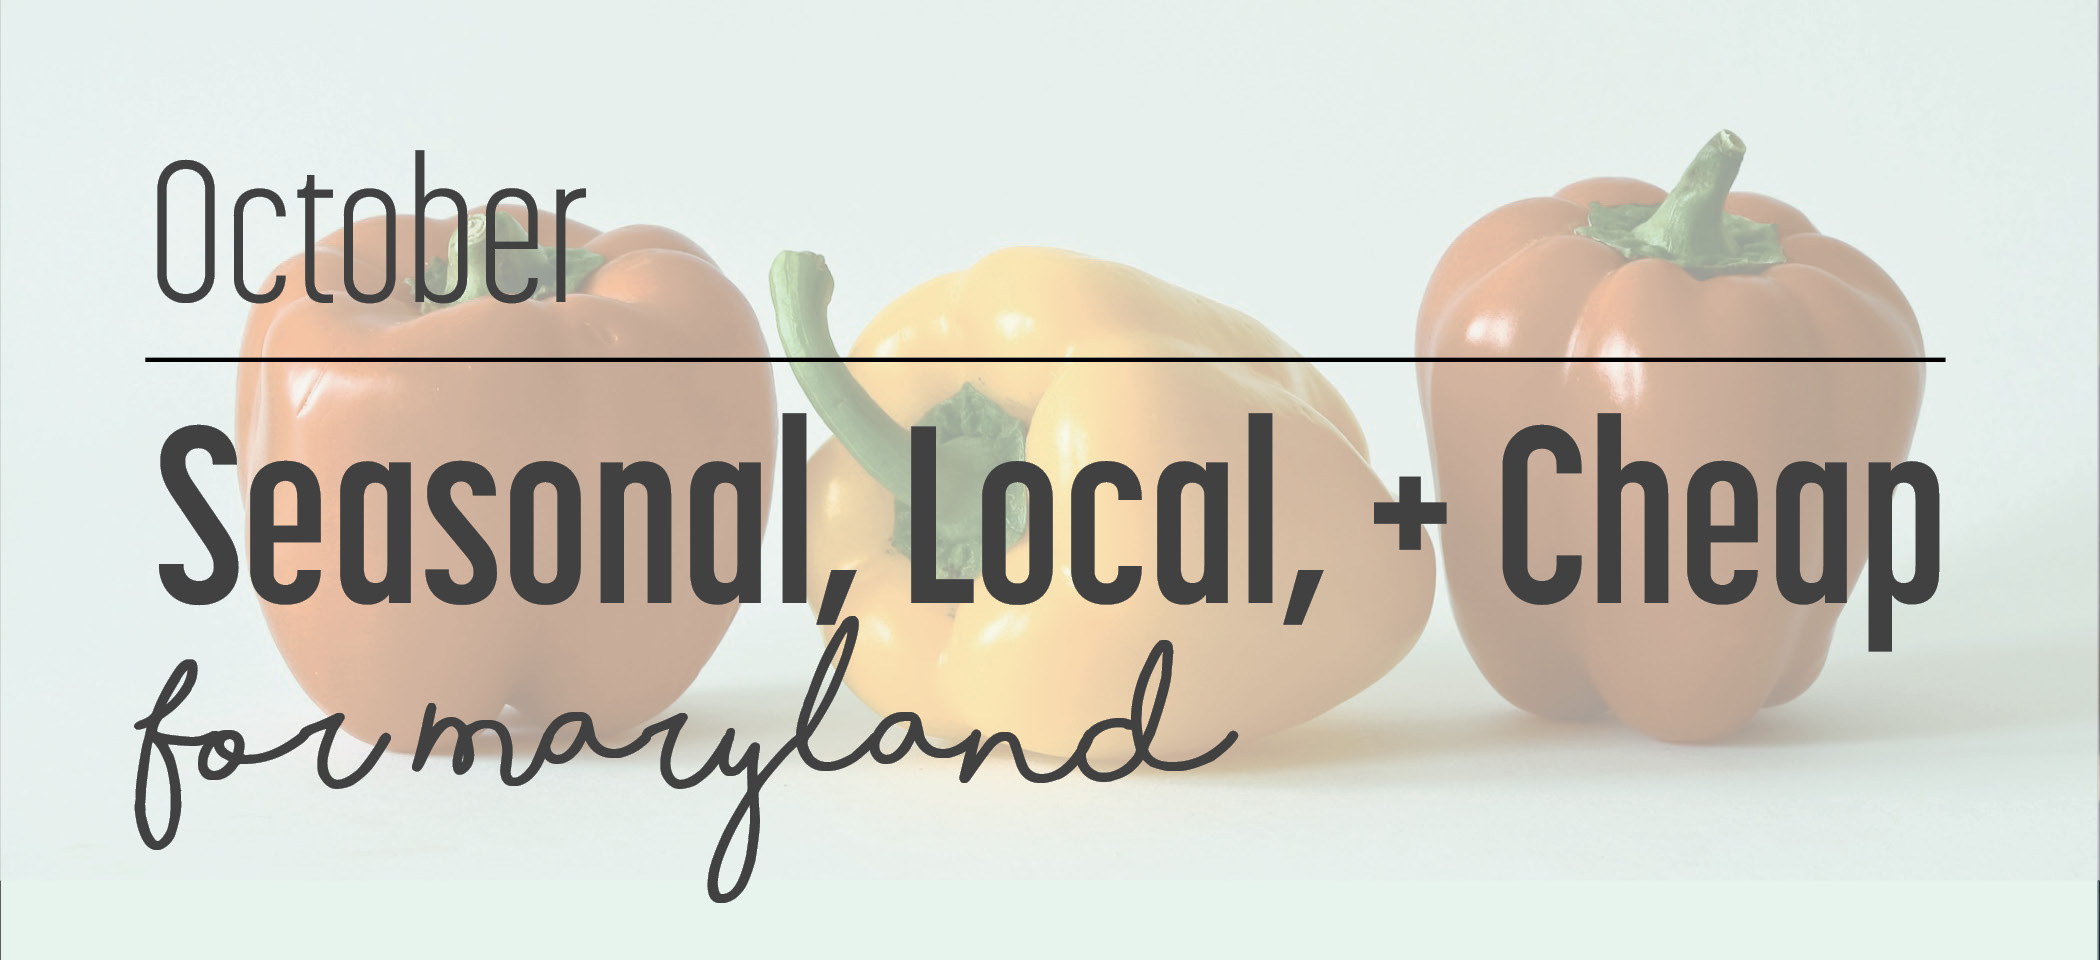 Seasonal, Local, Cheap: October